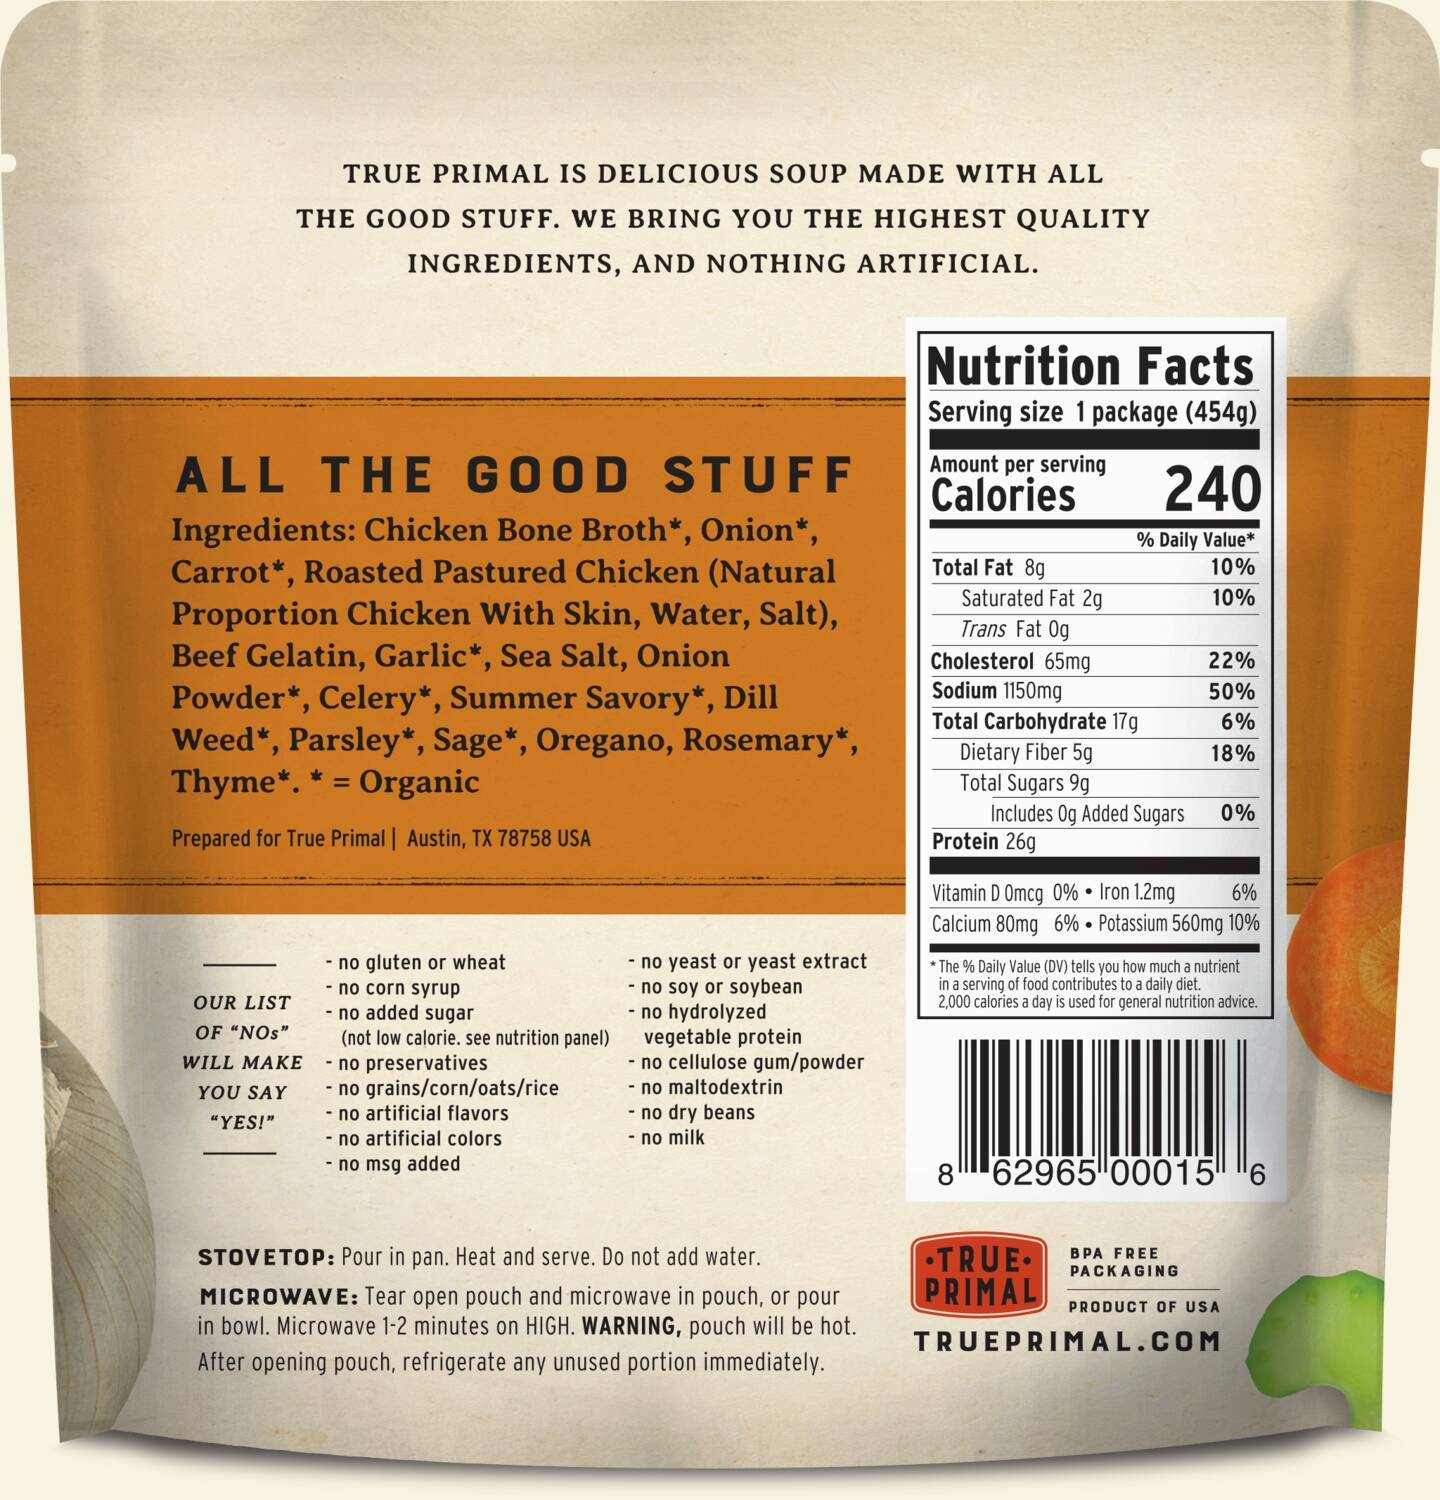 True Primal Roasted Chicken Soup in pouch, back of label. UPC: 862965000156.